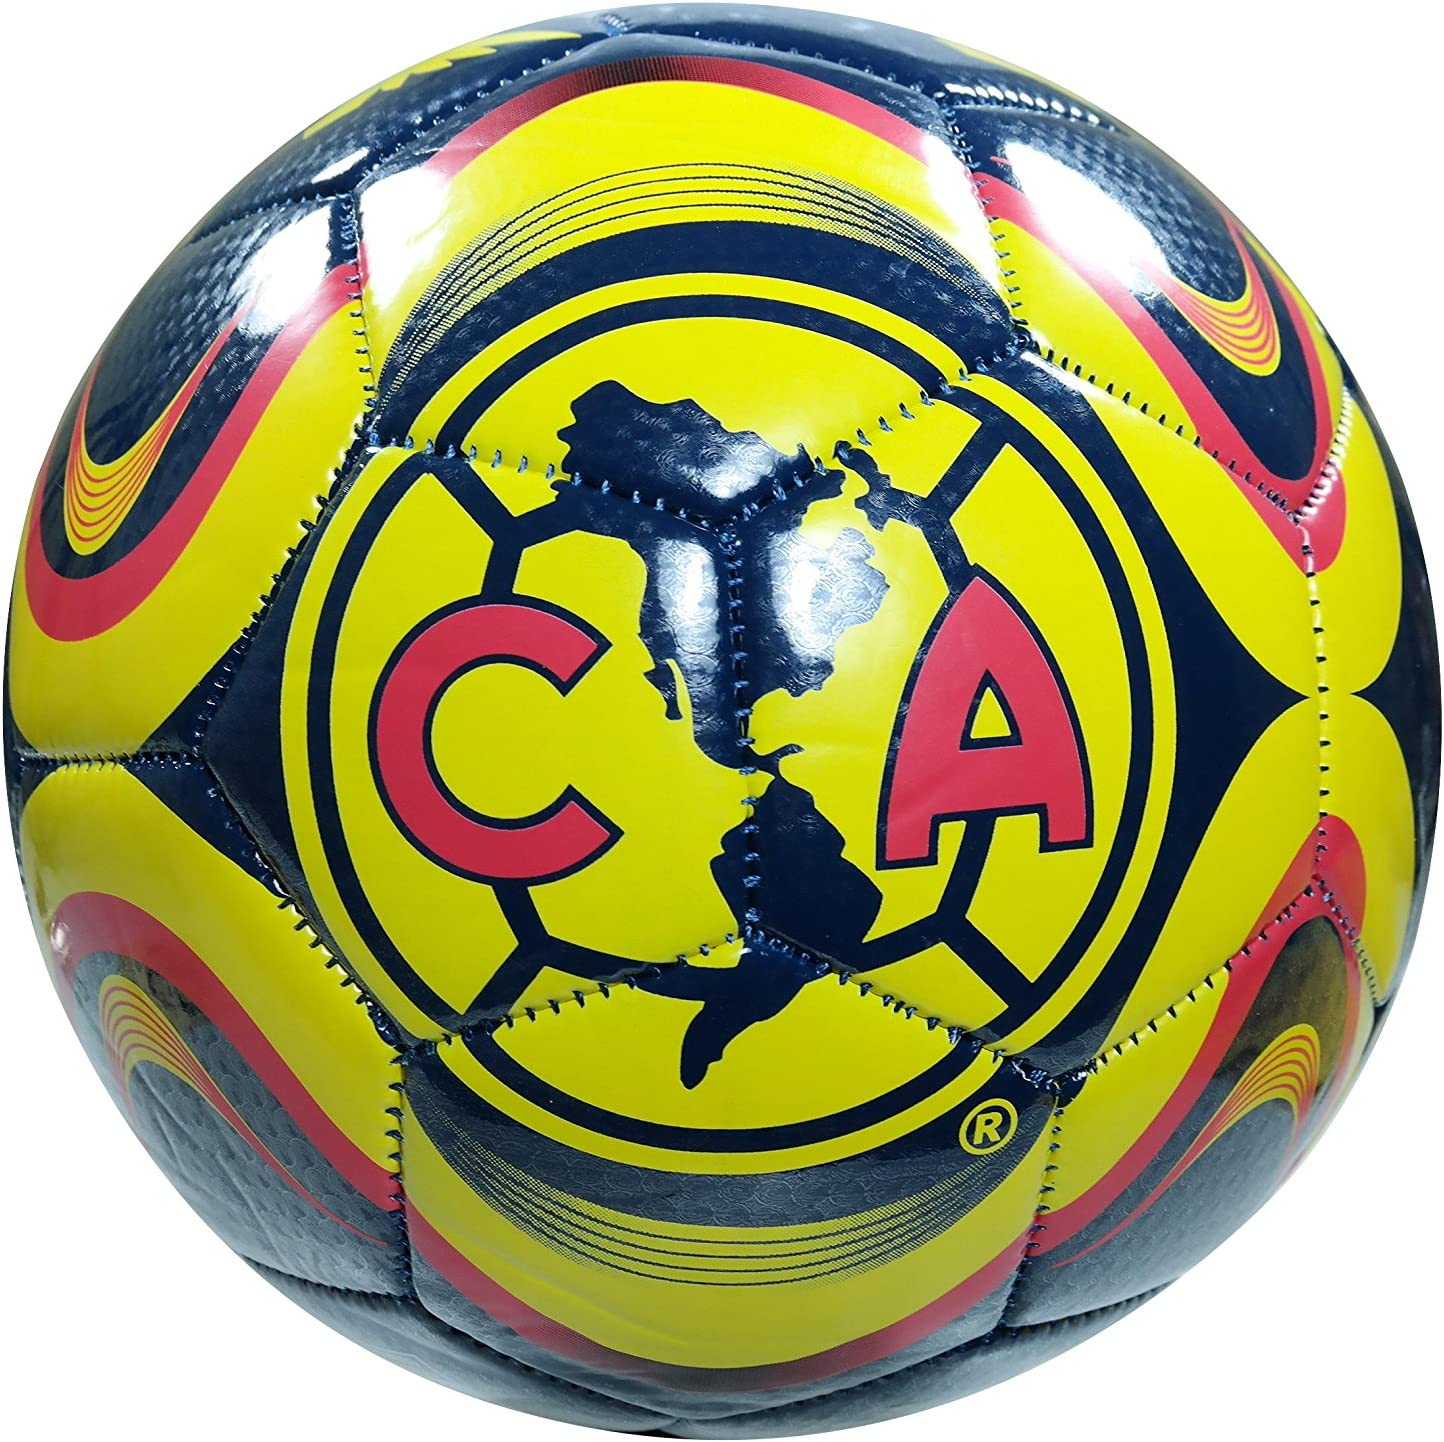 Club America Authentic Official Licensed Soccer 5-05-5 Year-end annual account Ball Size Popular shop is the lowest price challenge